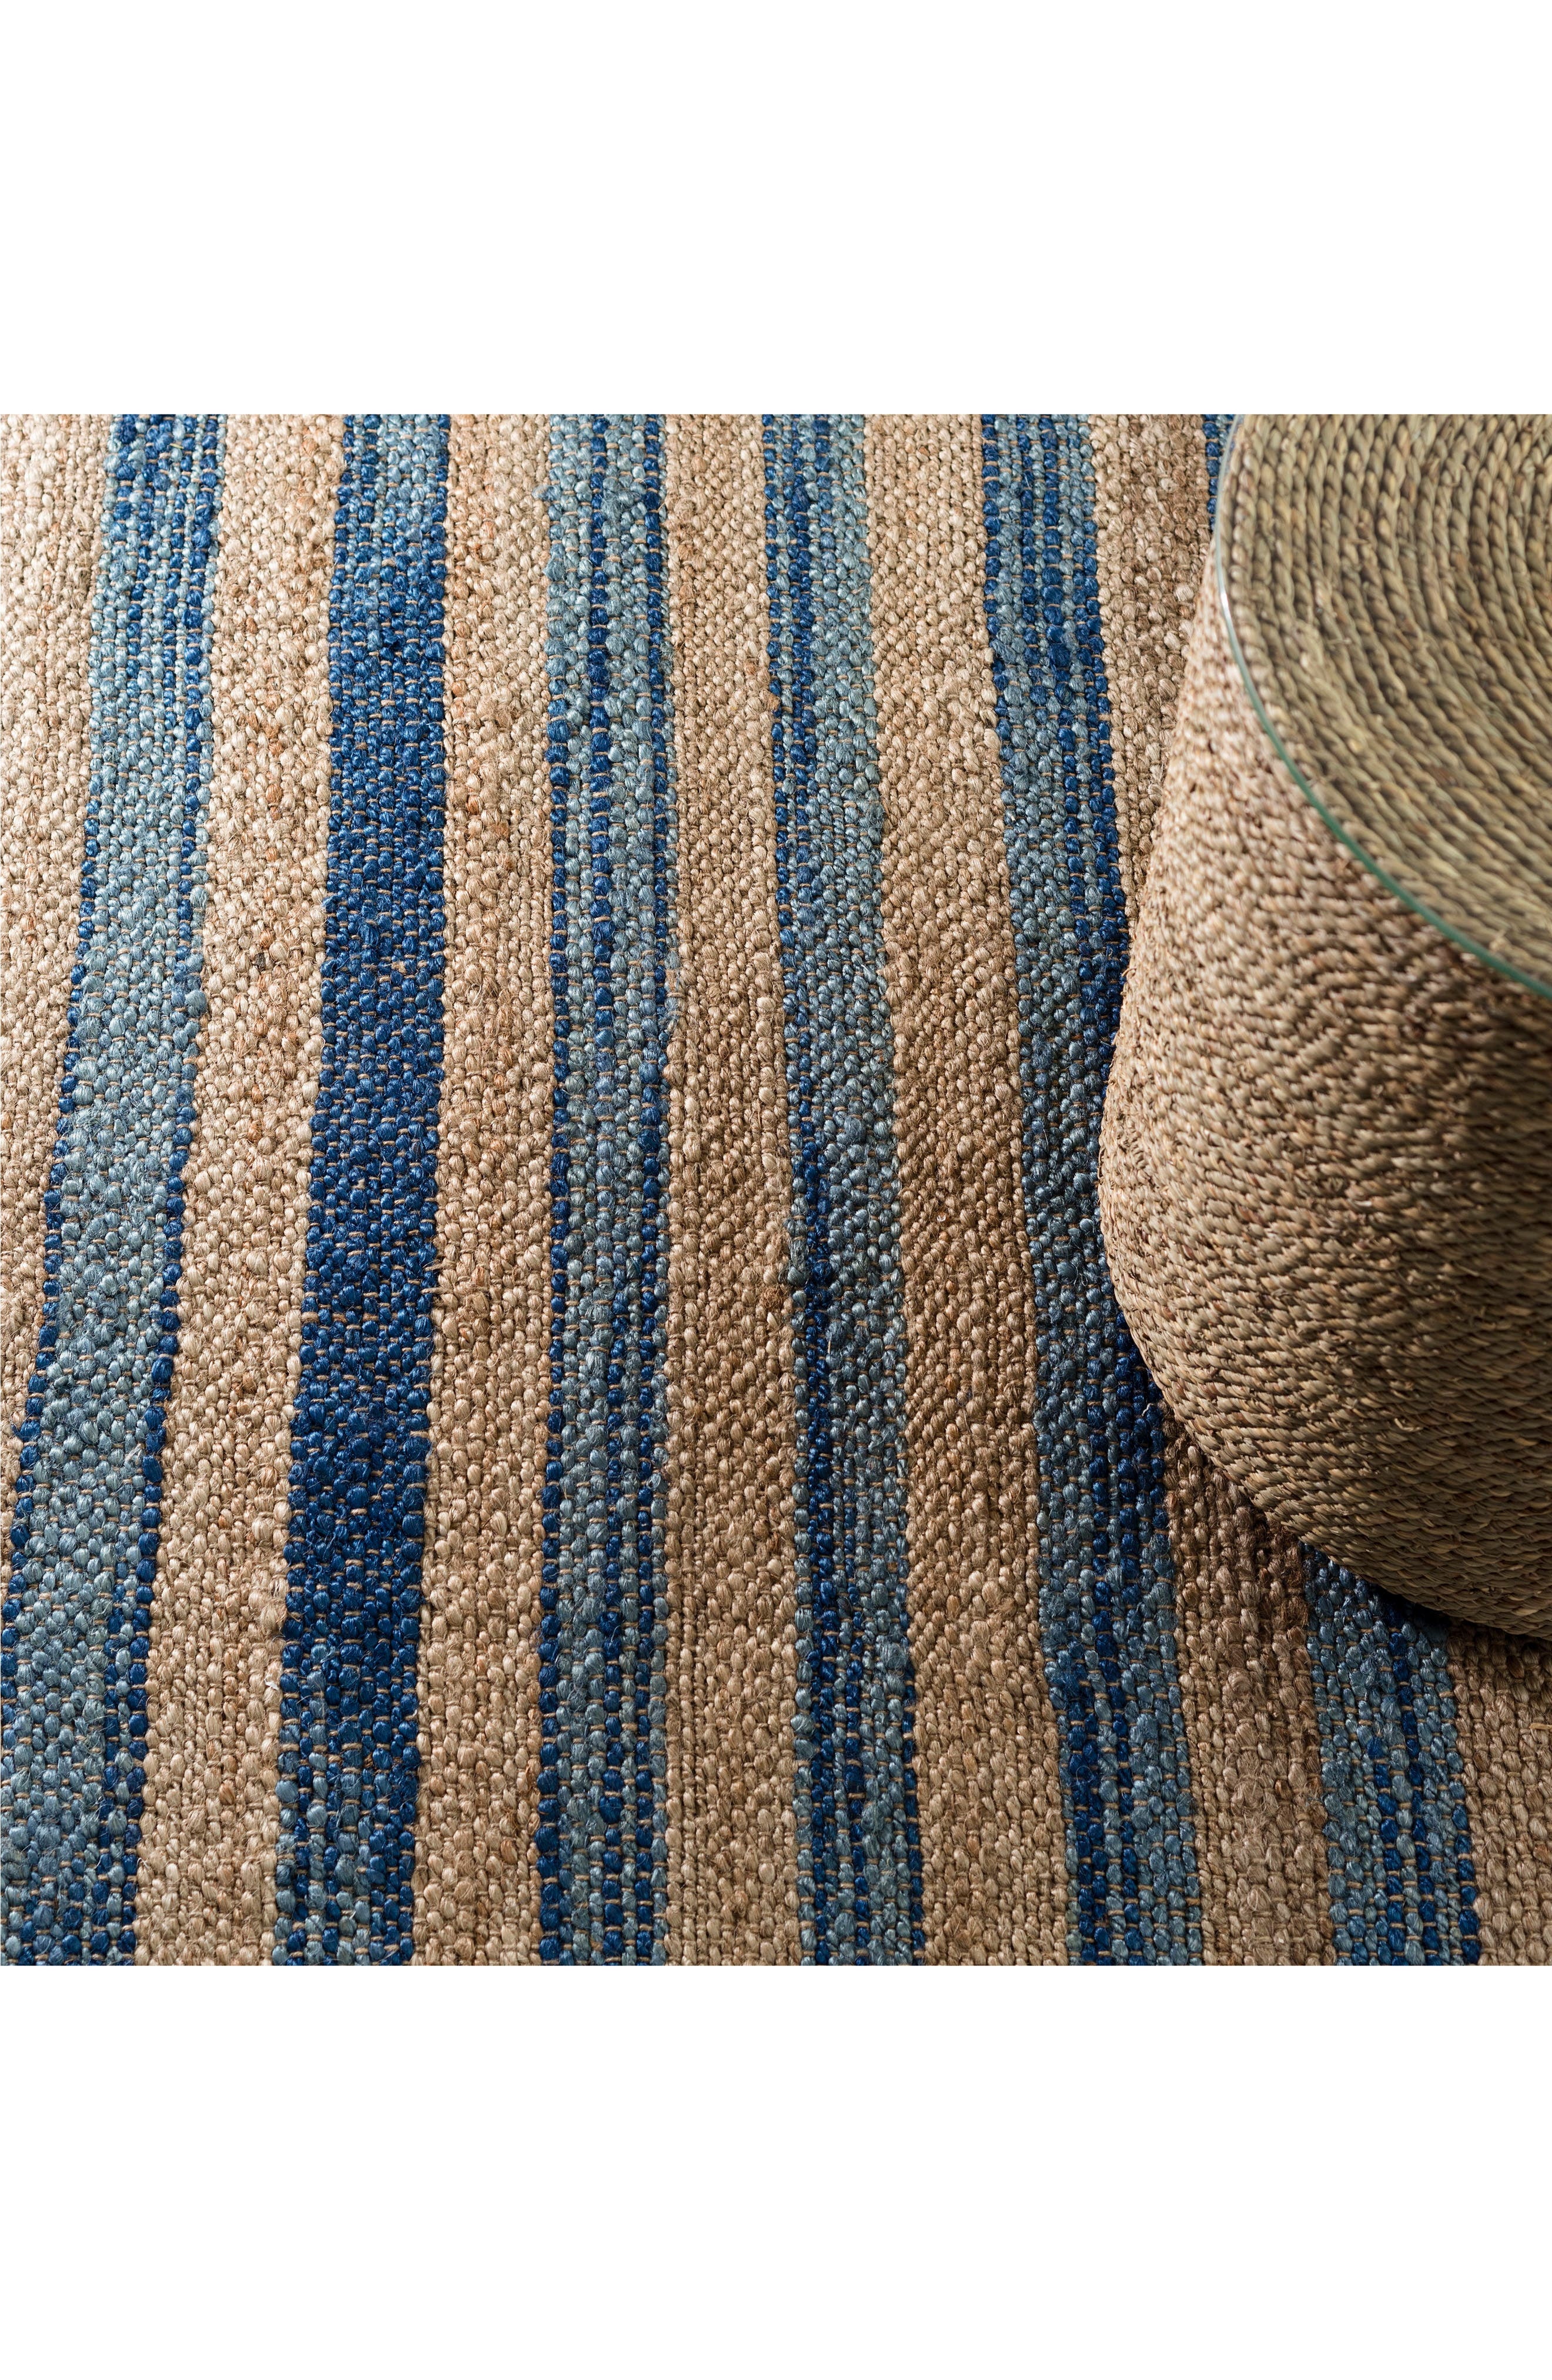 Corfu Woven Wool Rug,                             Alternate thumbnail 2, color,                             BLUE